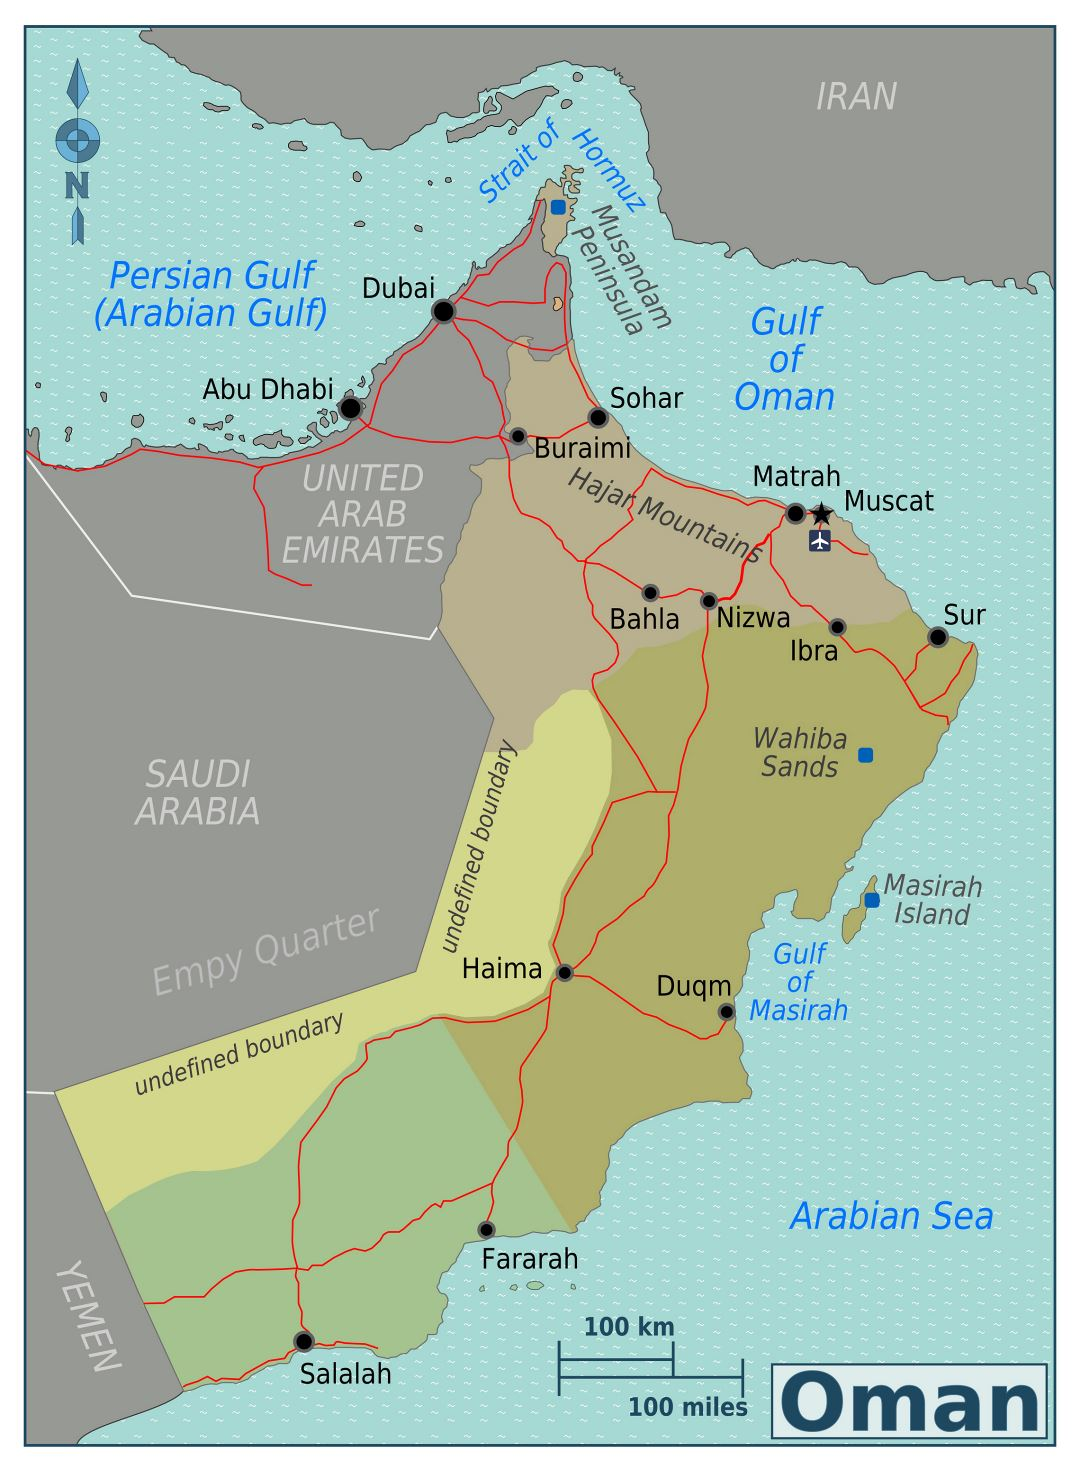 Large regions map of Oman